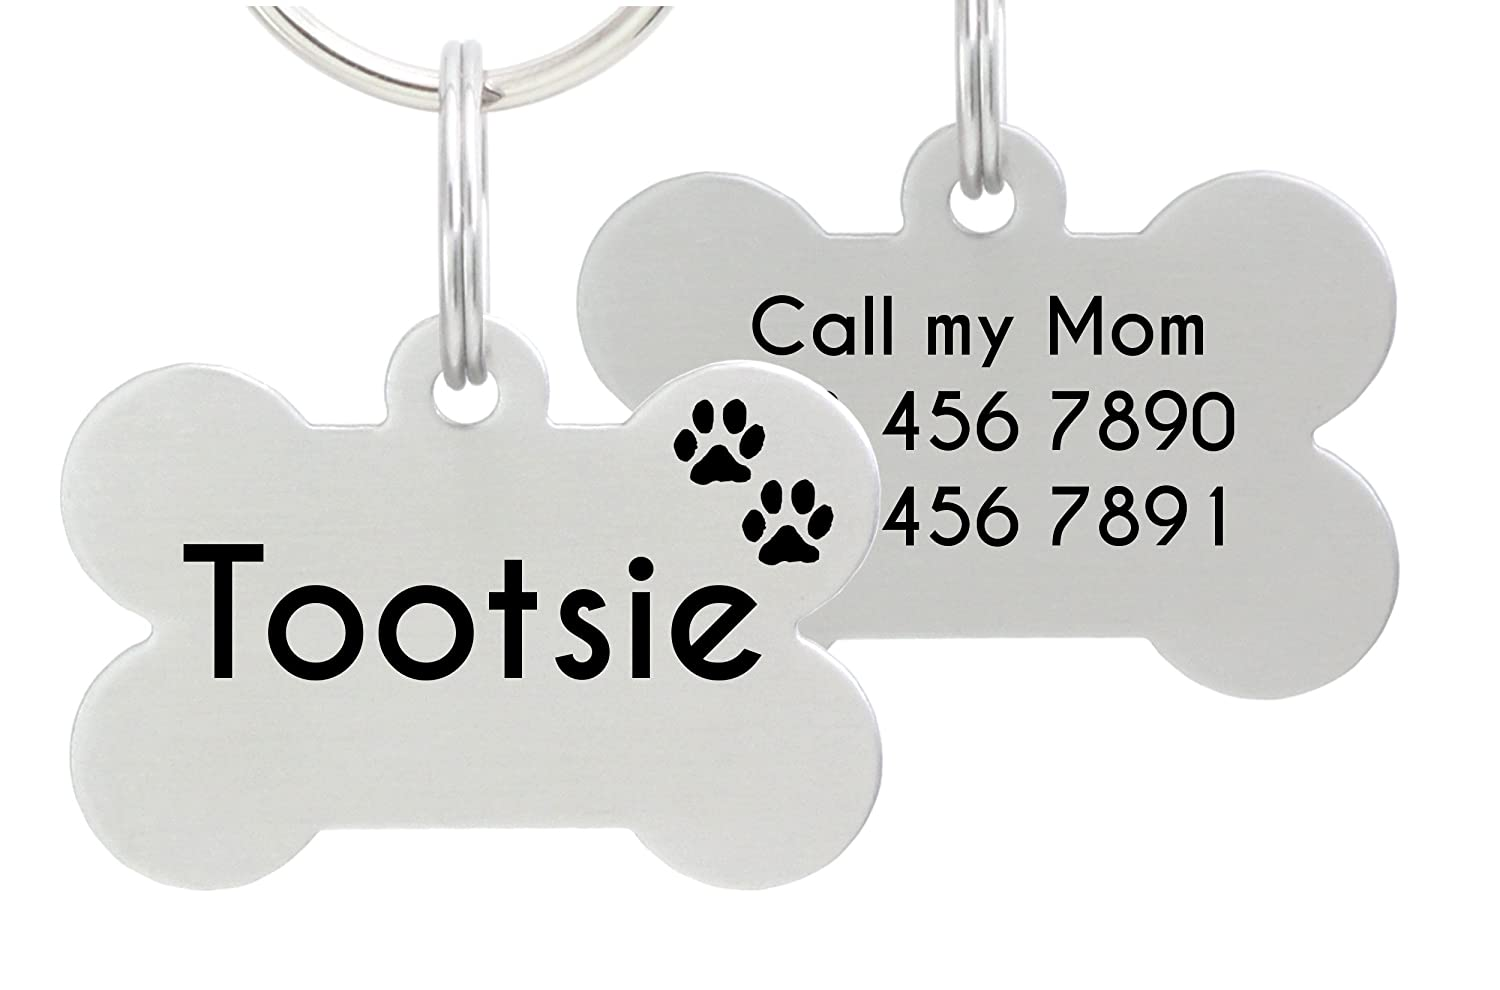 9c39f6406fc8 Amazon.com : io tags Double Sided Laser Etched Stainless Steel Pet ID Tag  for Dog Engraved and Personalized Bone Shape (Paws) : Pet Supplies